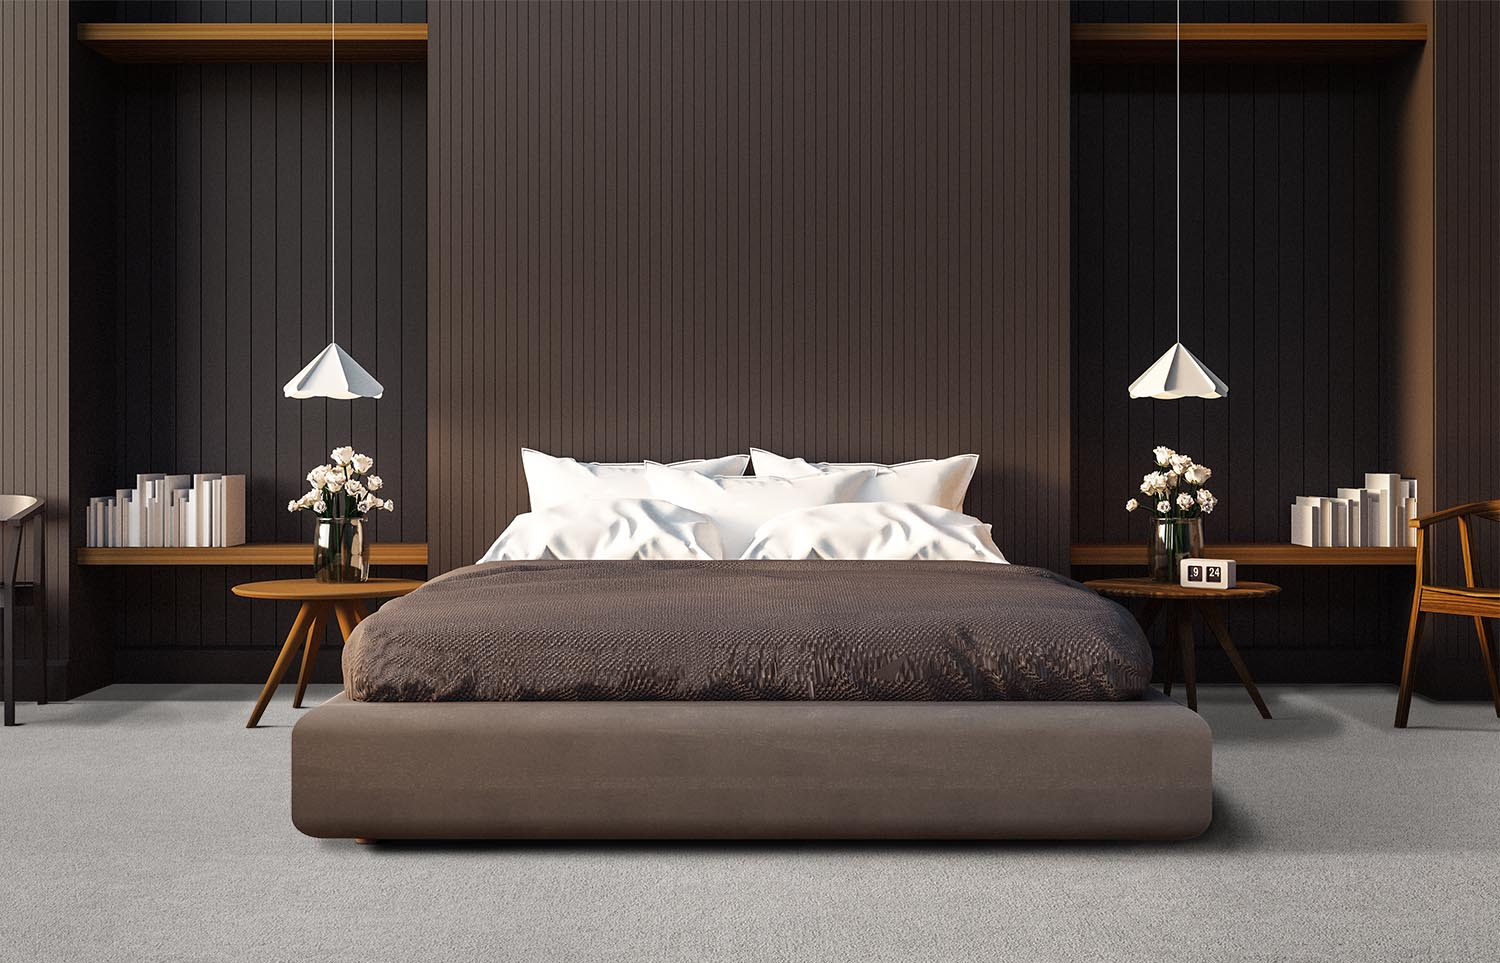 Softology - S301 - Downy contemporary bedroom